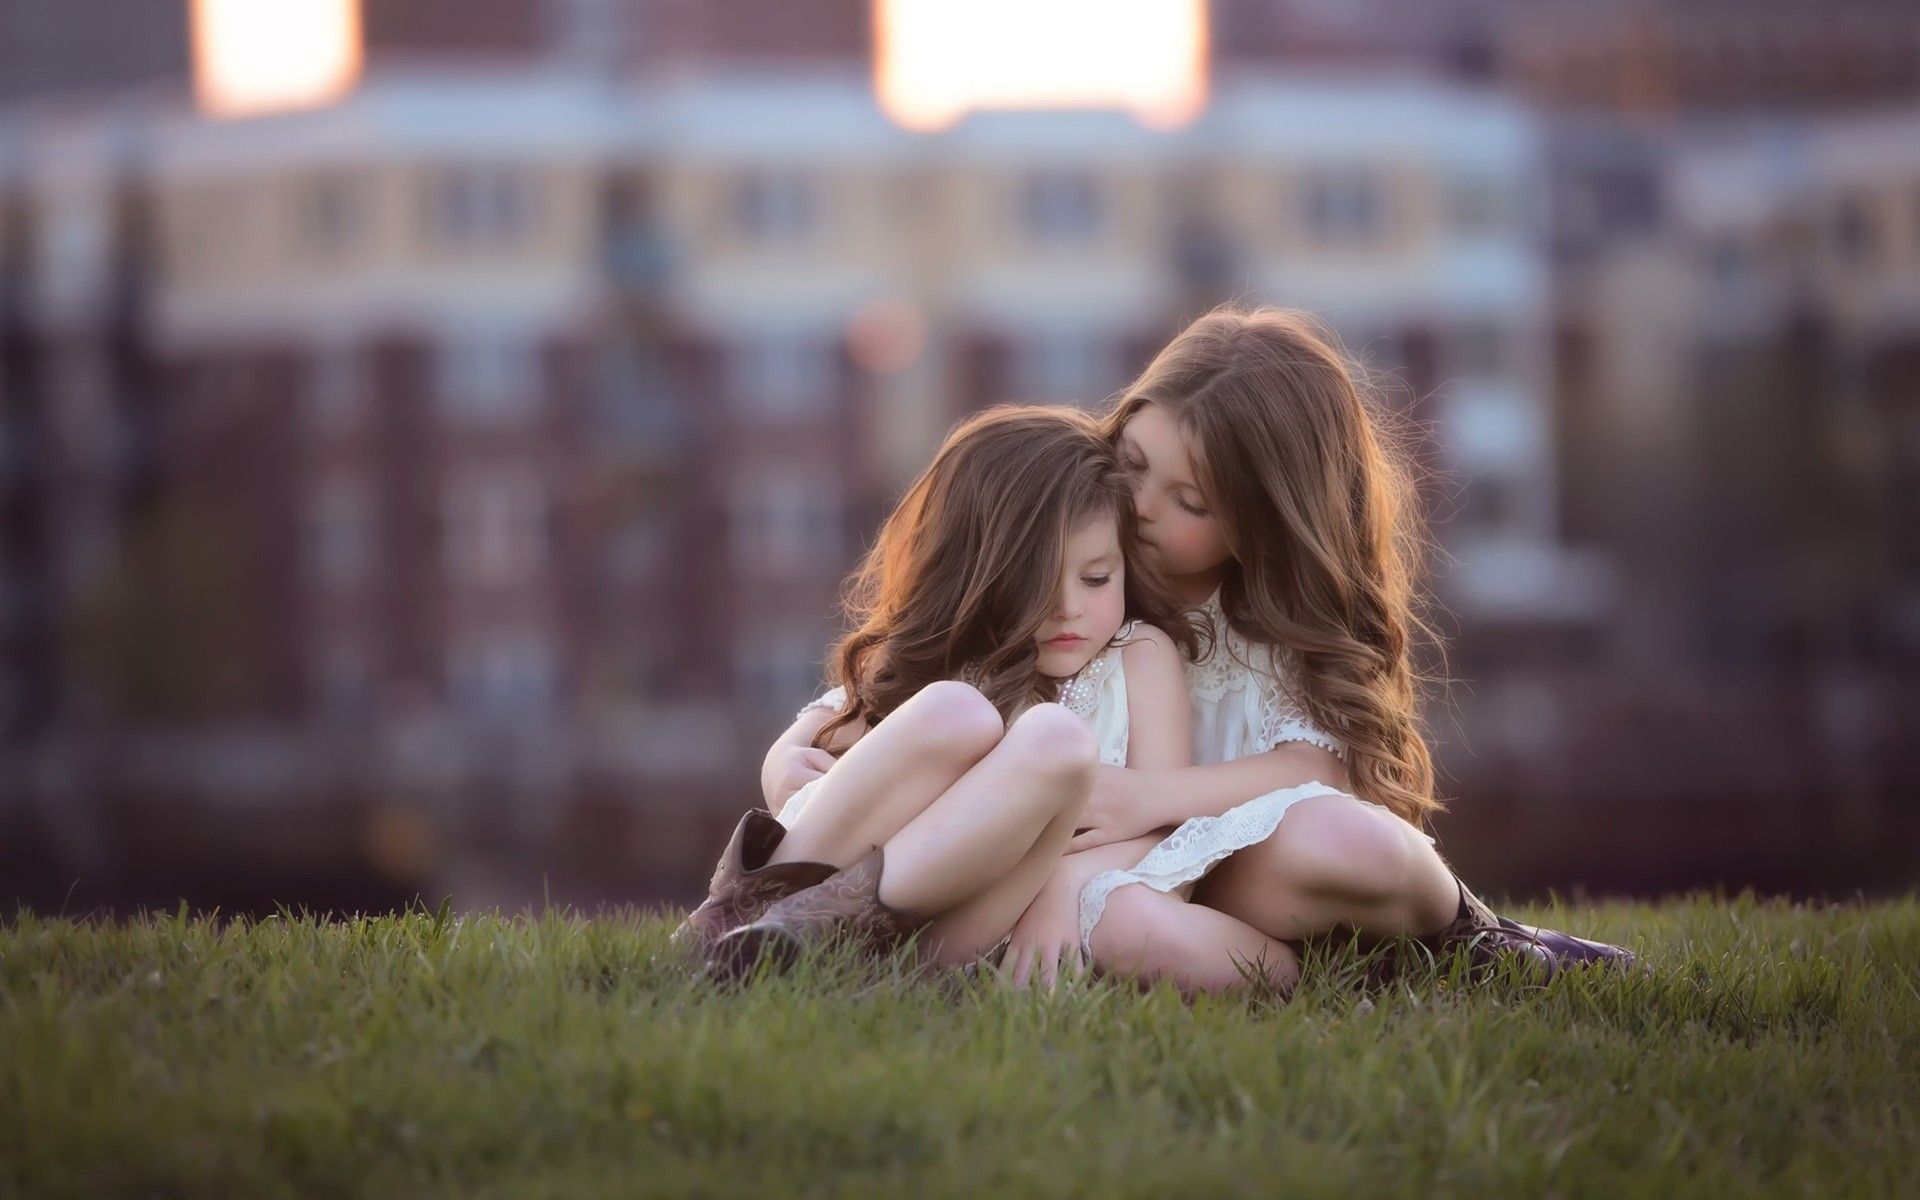 I Love My Sister Wallpapers 60 Images Sister Wallpaper Cute Girl Wallpaper Love My Sister